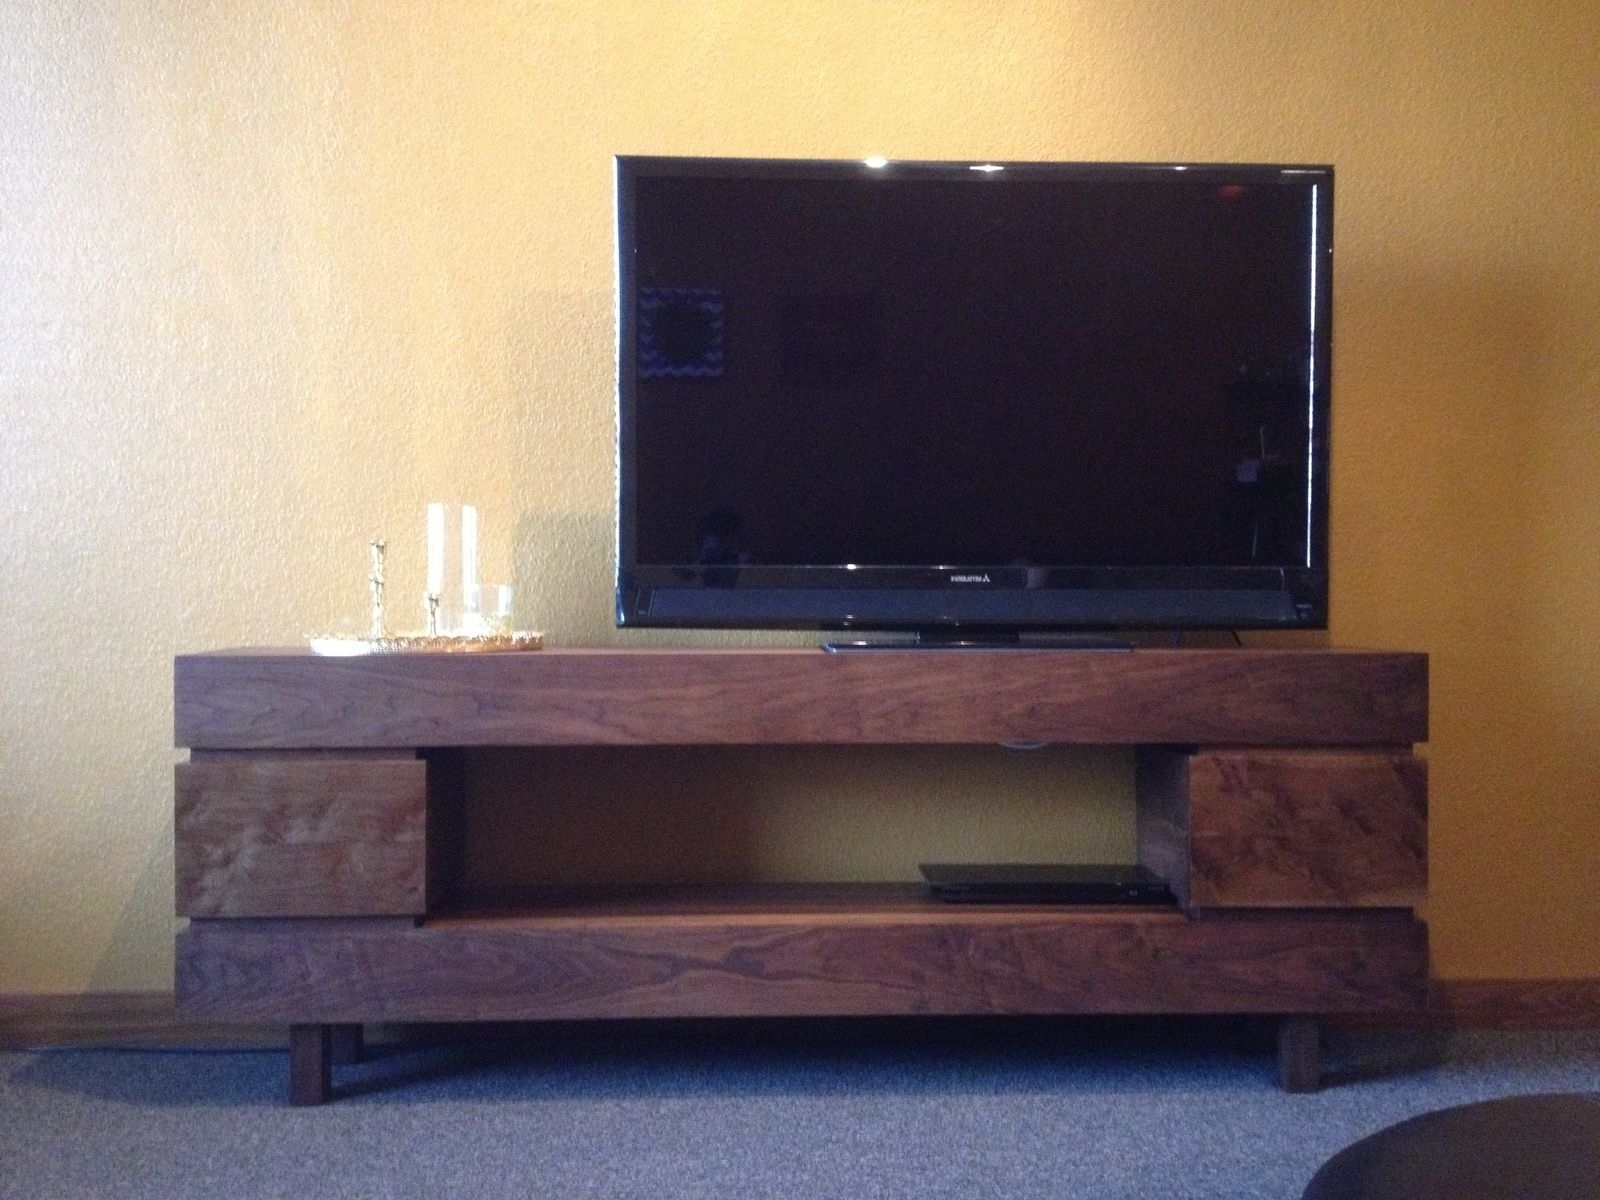 Custommade Intended For Popular Handmade Tv Unit (View 5 of 15)